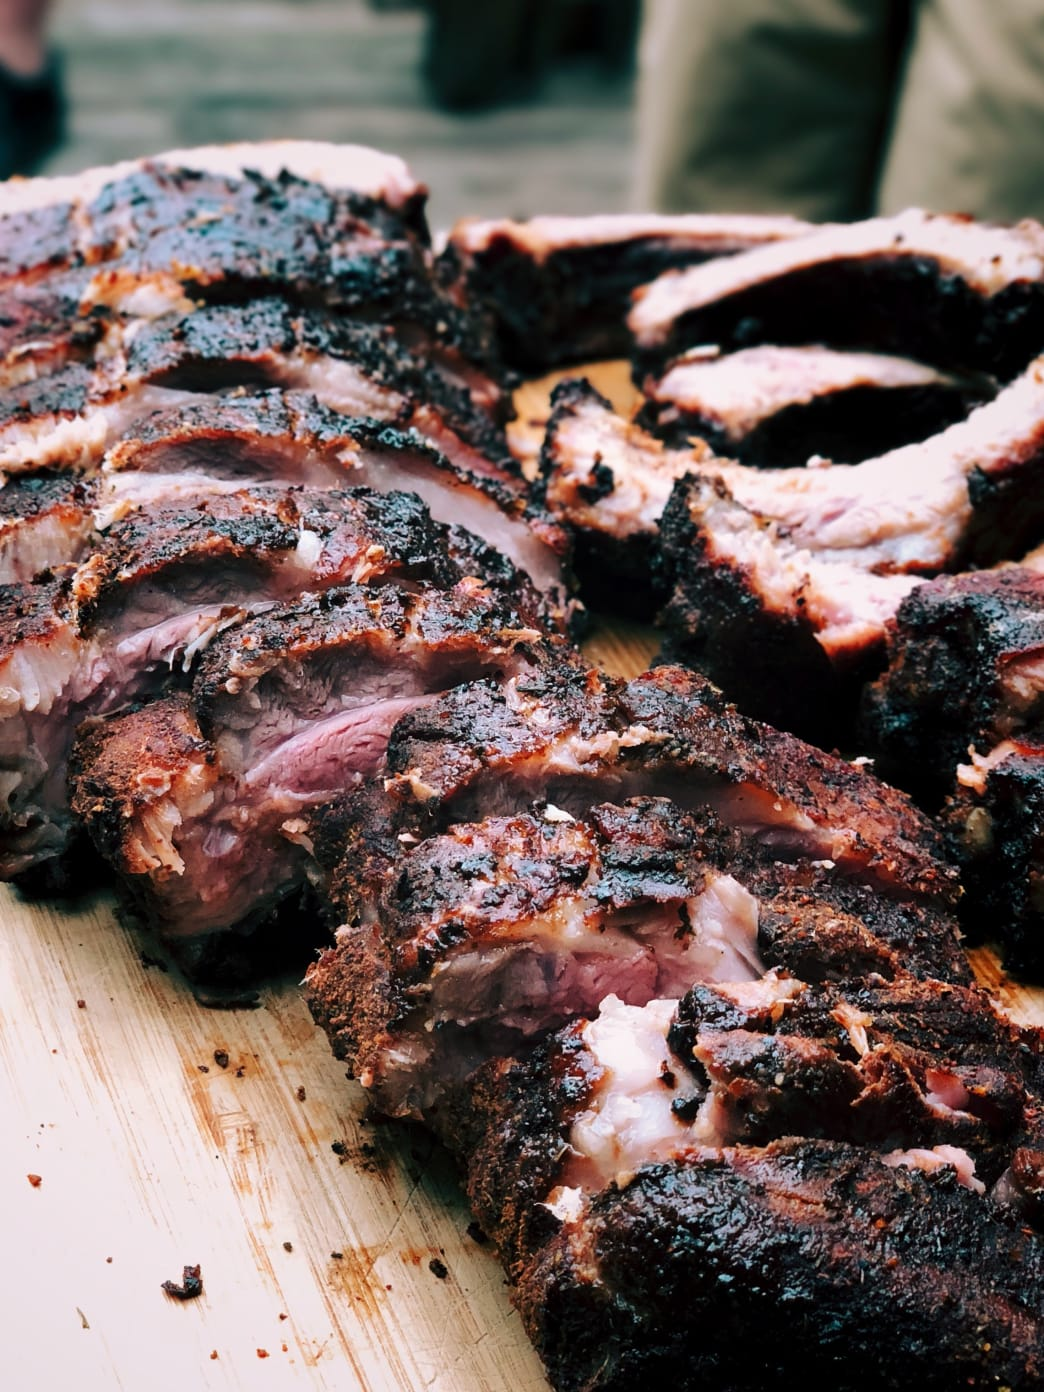 One of the biggest attractions in Mesquite: Texas BBQ